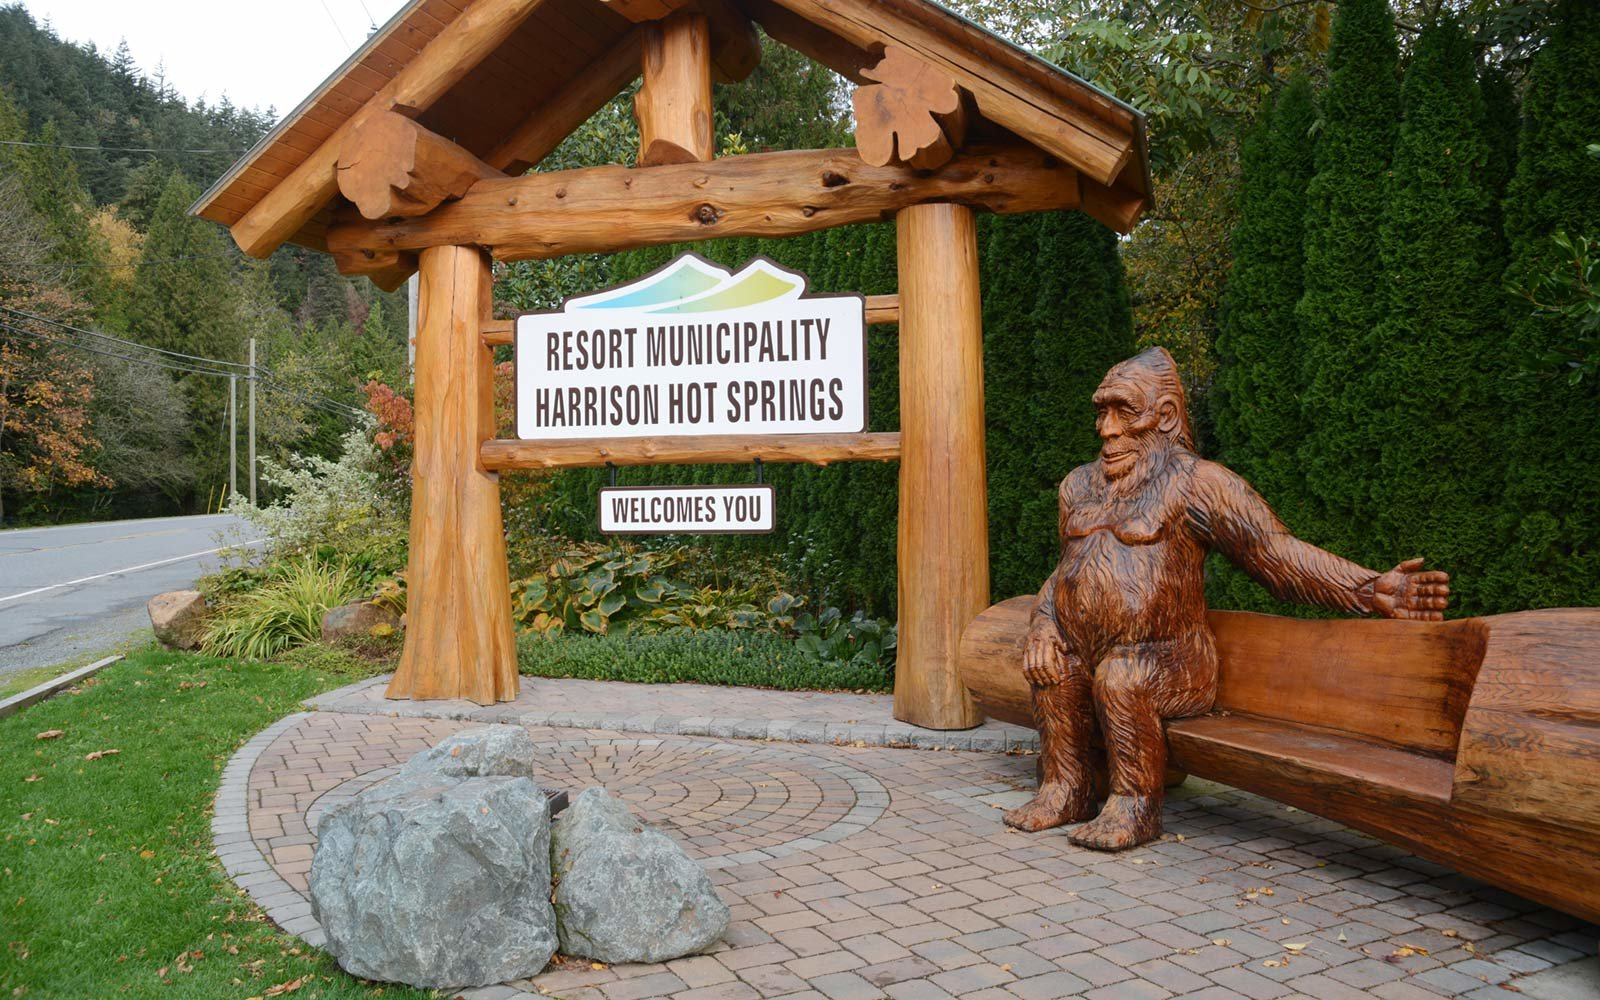 Sasquatch Caves, Harrison Hot Springs, British Columbia, Canada